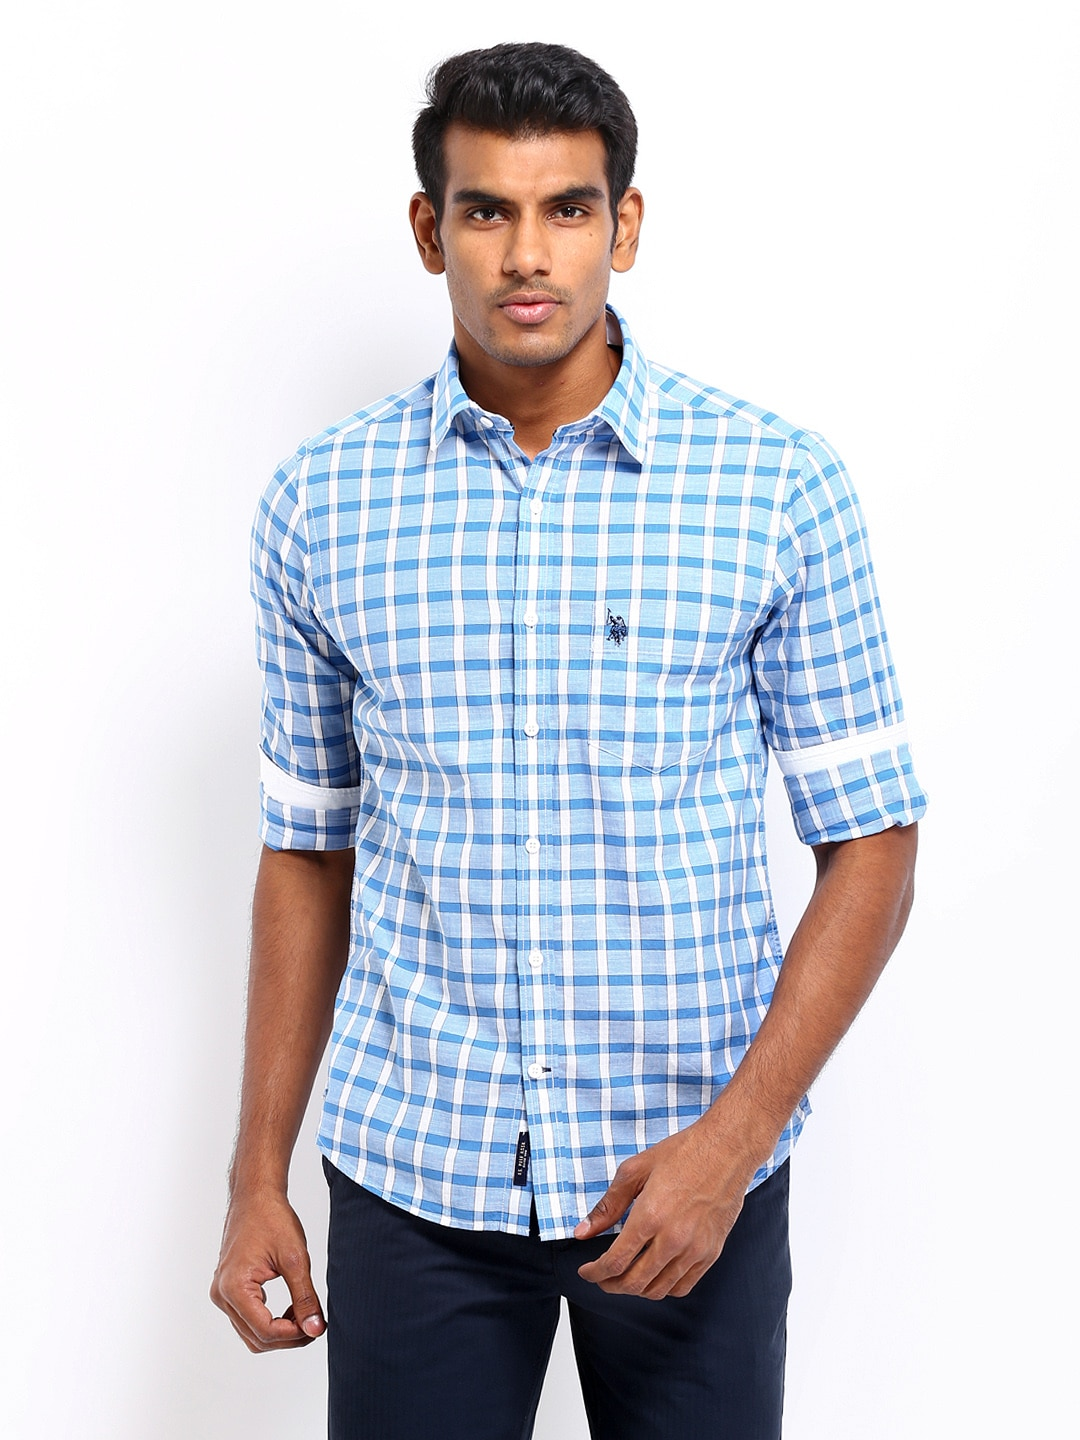 U.S. Polo Assn. Men Blue & White Checked Tailored Fit Smart-Casual Shirt